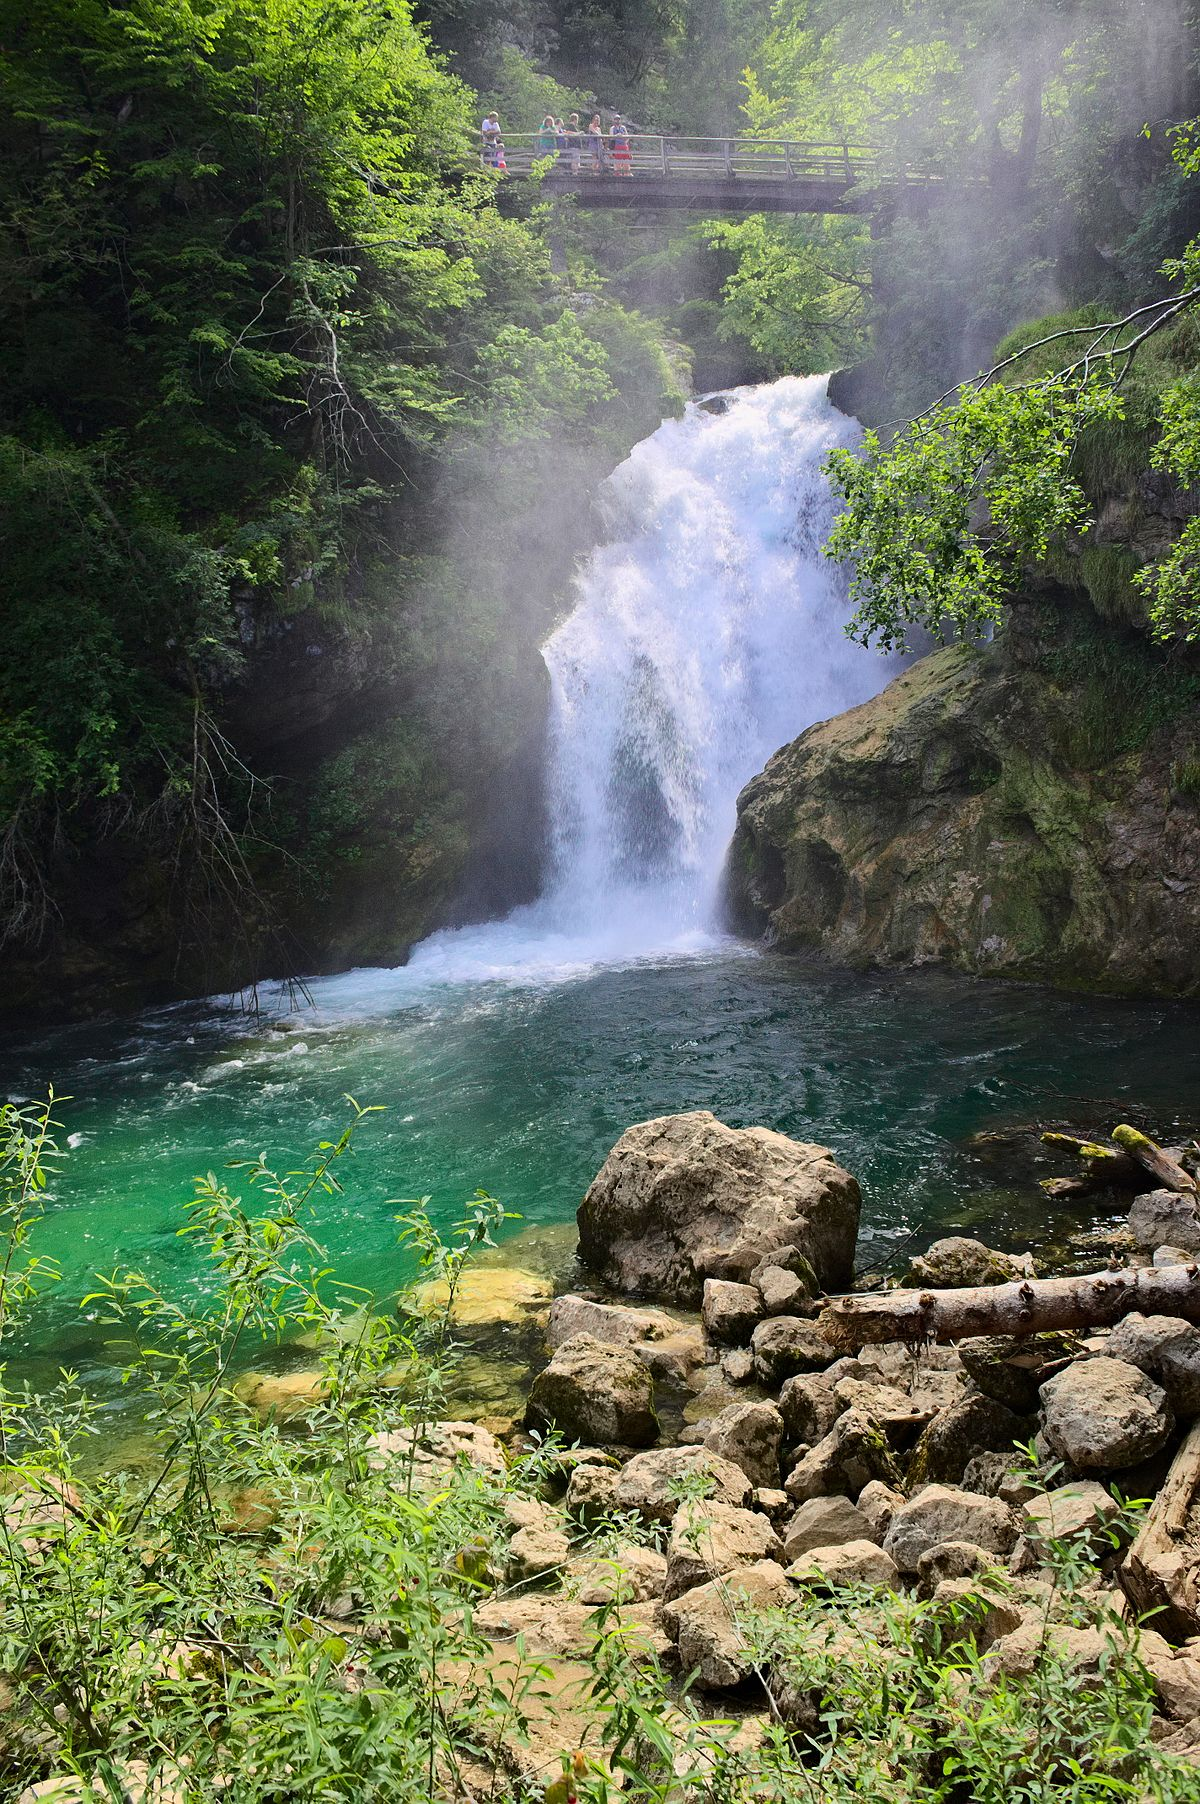 vintgar gorge wikipedia. Black Bedroom Furniture Sets. Home Design Ideas